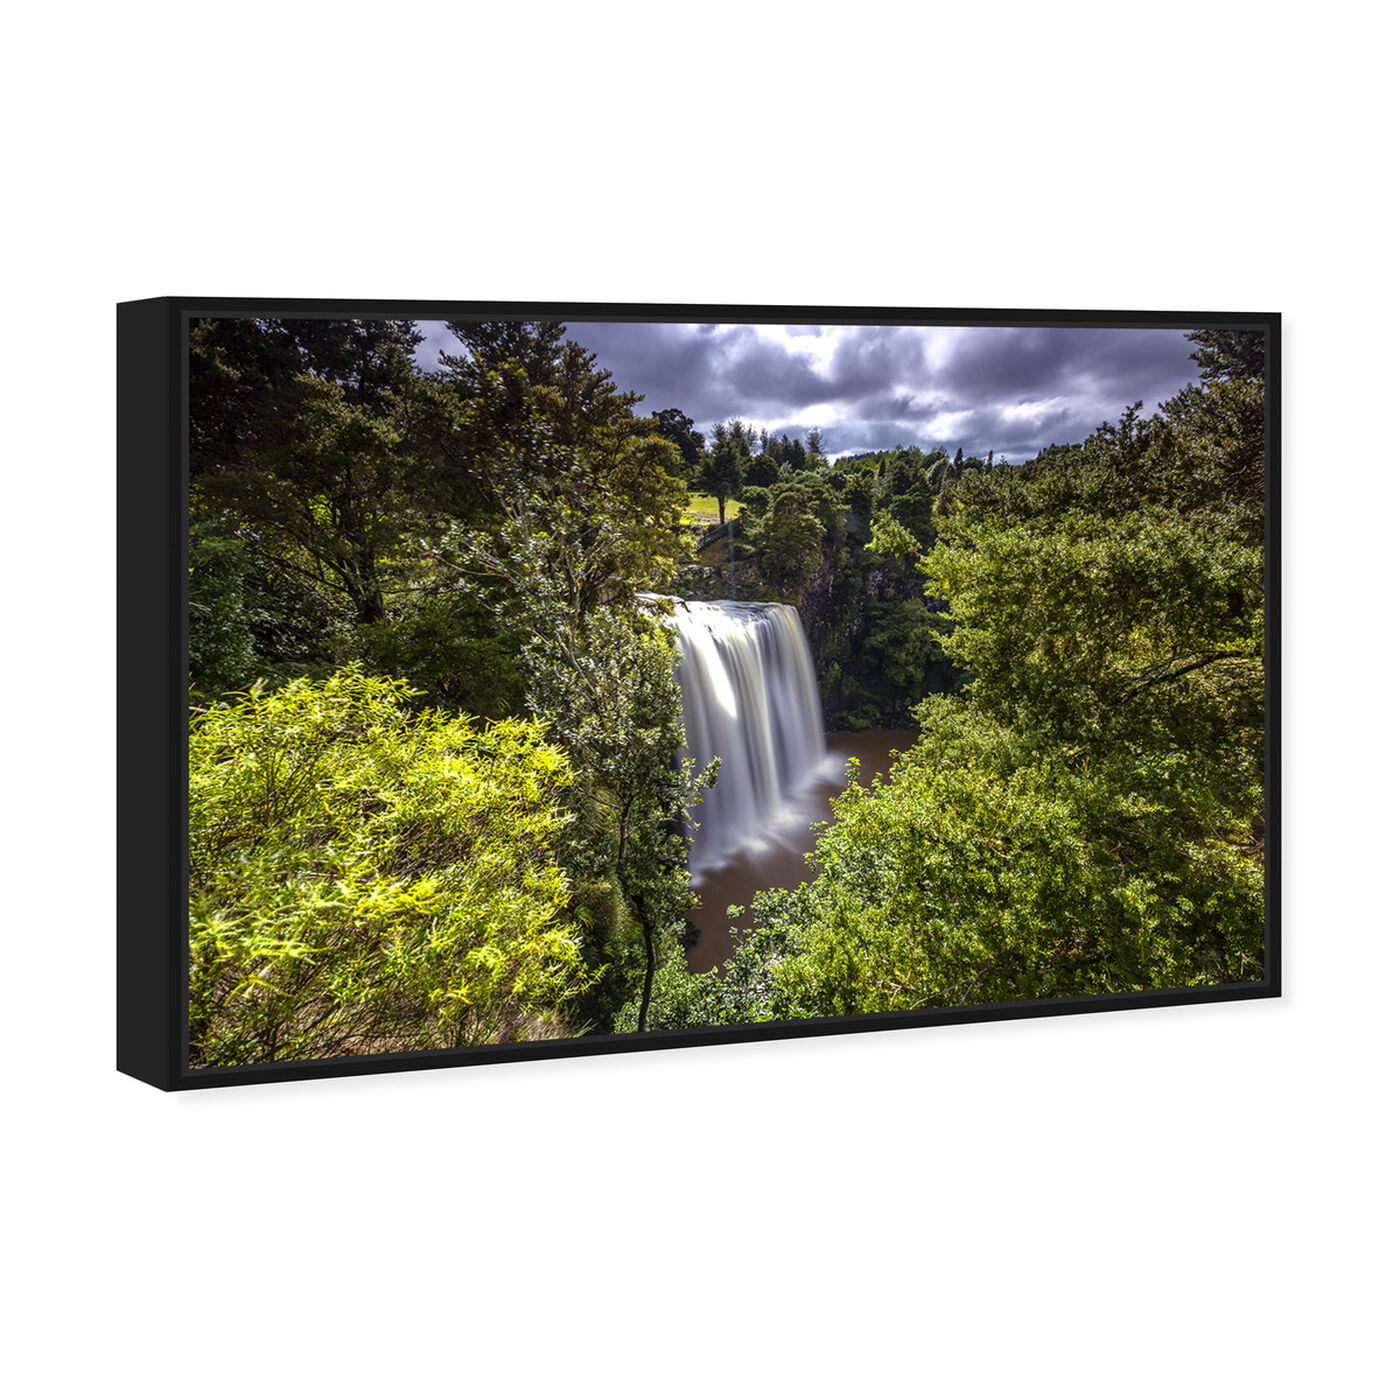 Angled view of Curro Cardenal - Rainforest IV featuring nature and landscape and nature art.